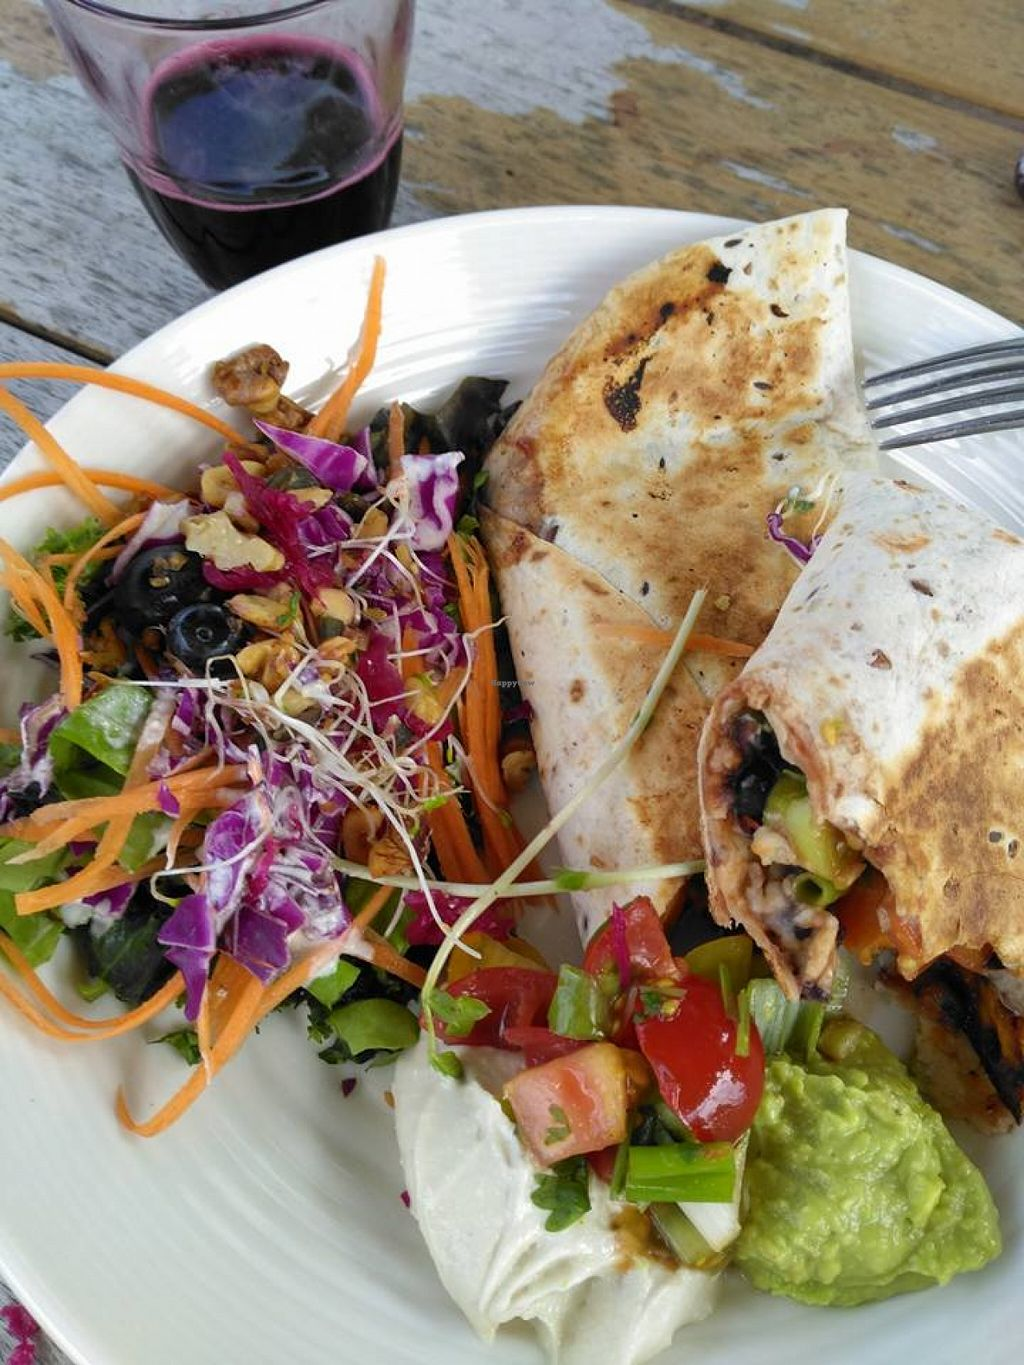 """Photo of Food Forest Organics  by <a href=""""/members/profile/Davidnoix"""">Davidnoix</a> <br/>My burrito for lunch <br/> January 29, 2016  - <a href='/contact/abuse/image/56720/134138'>Report</a>"""